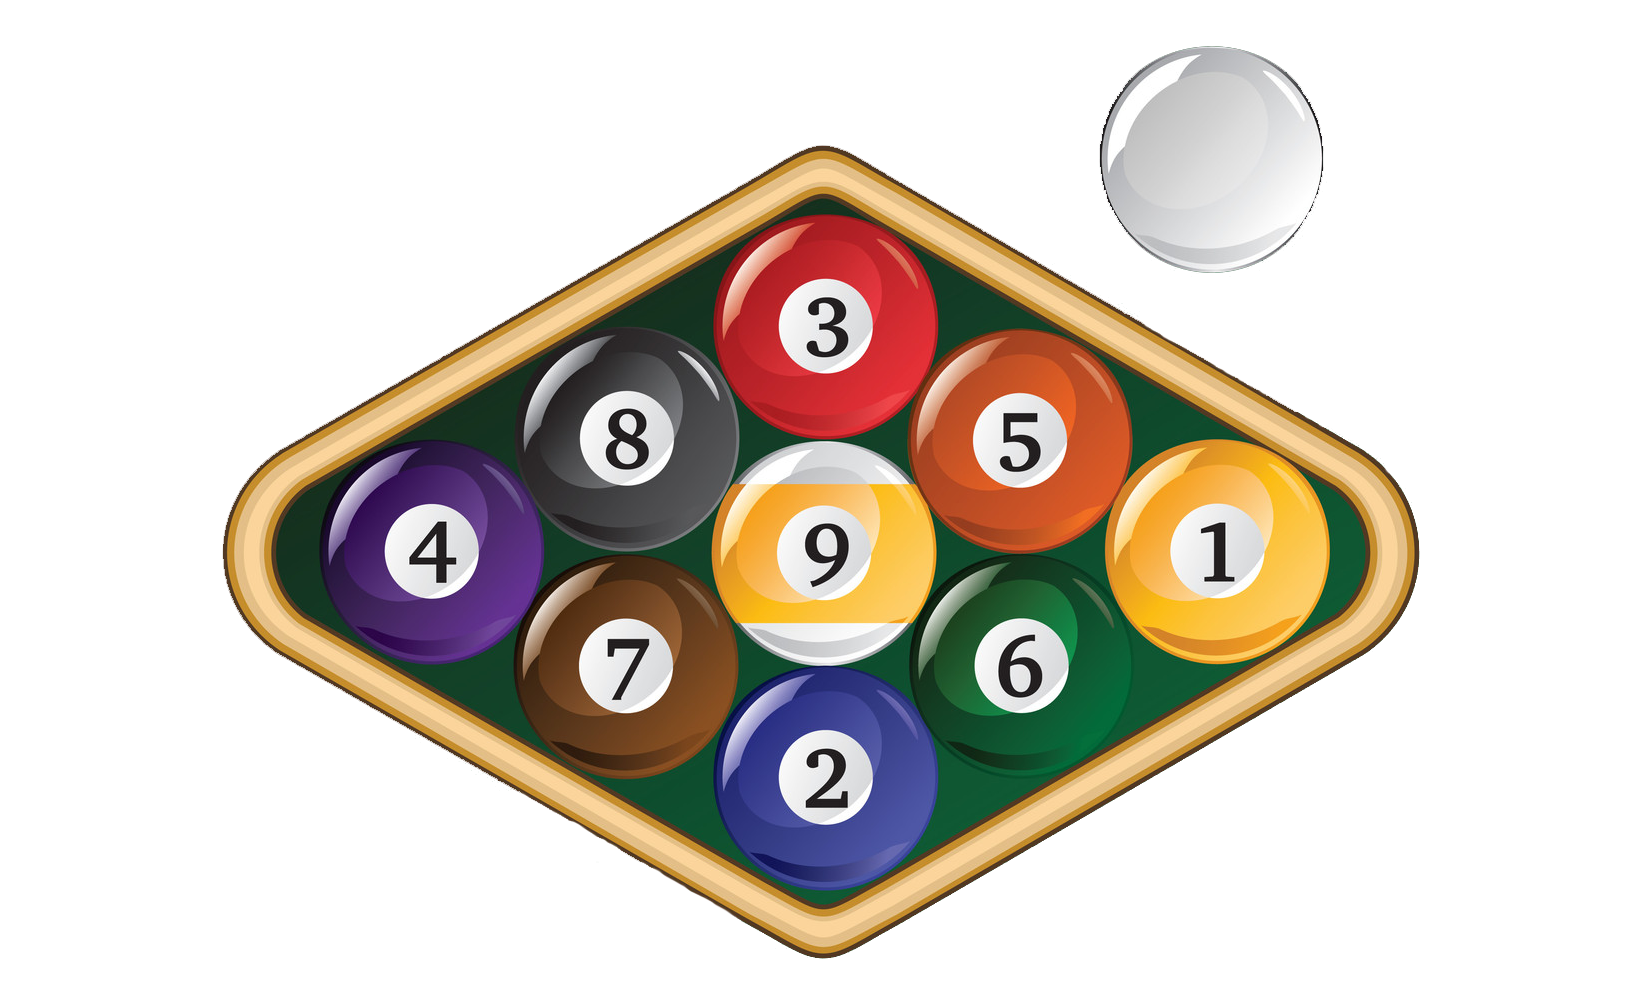 how to rack in 9-ball pool